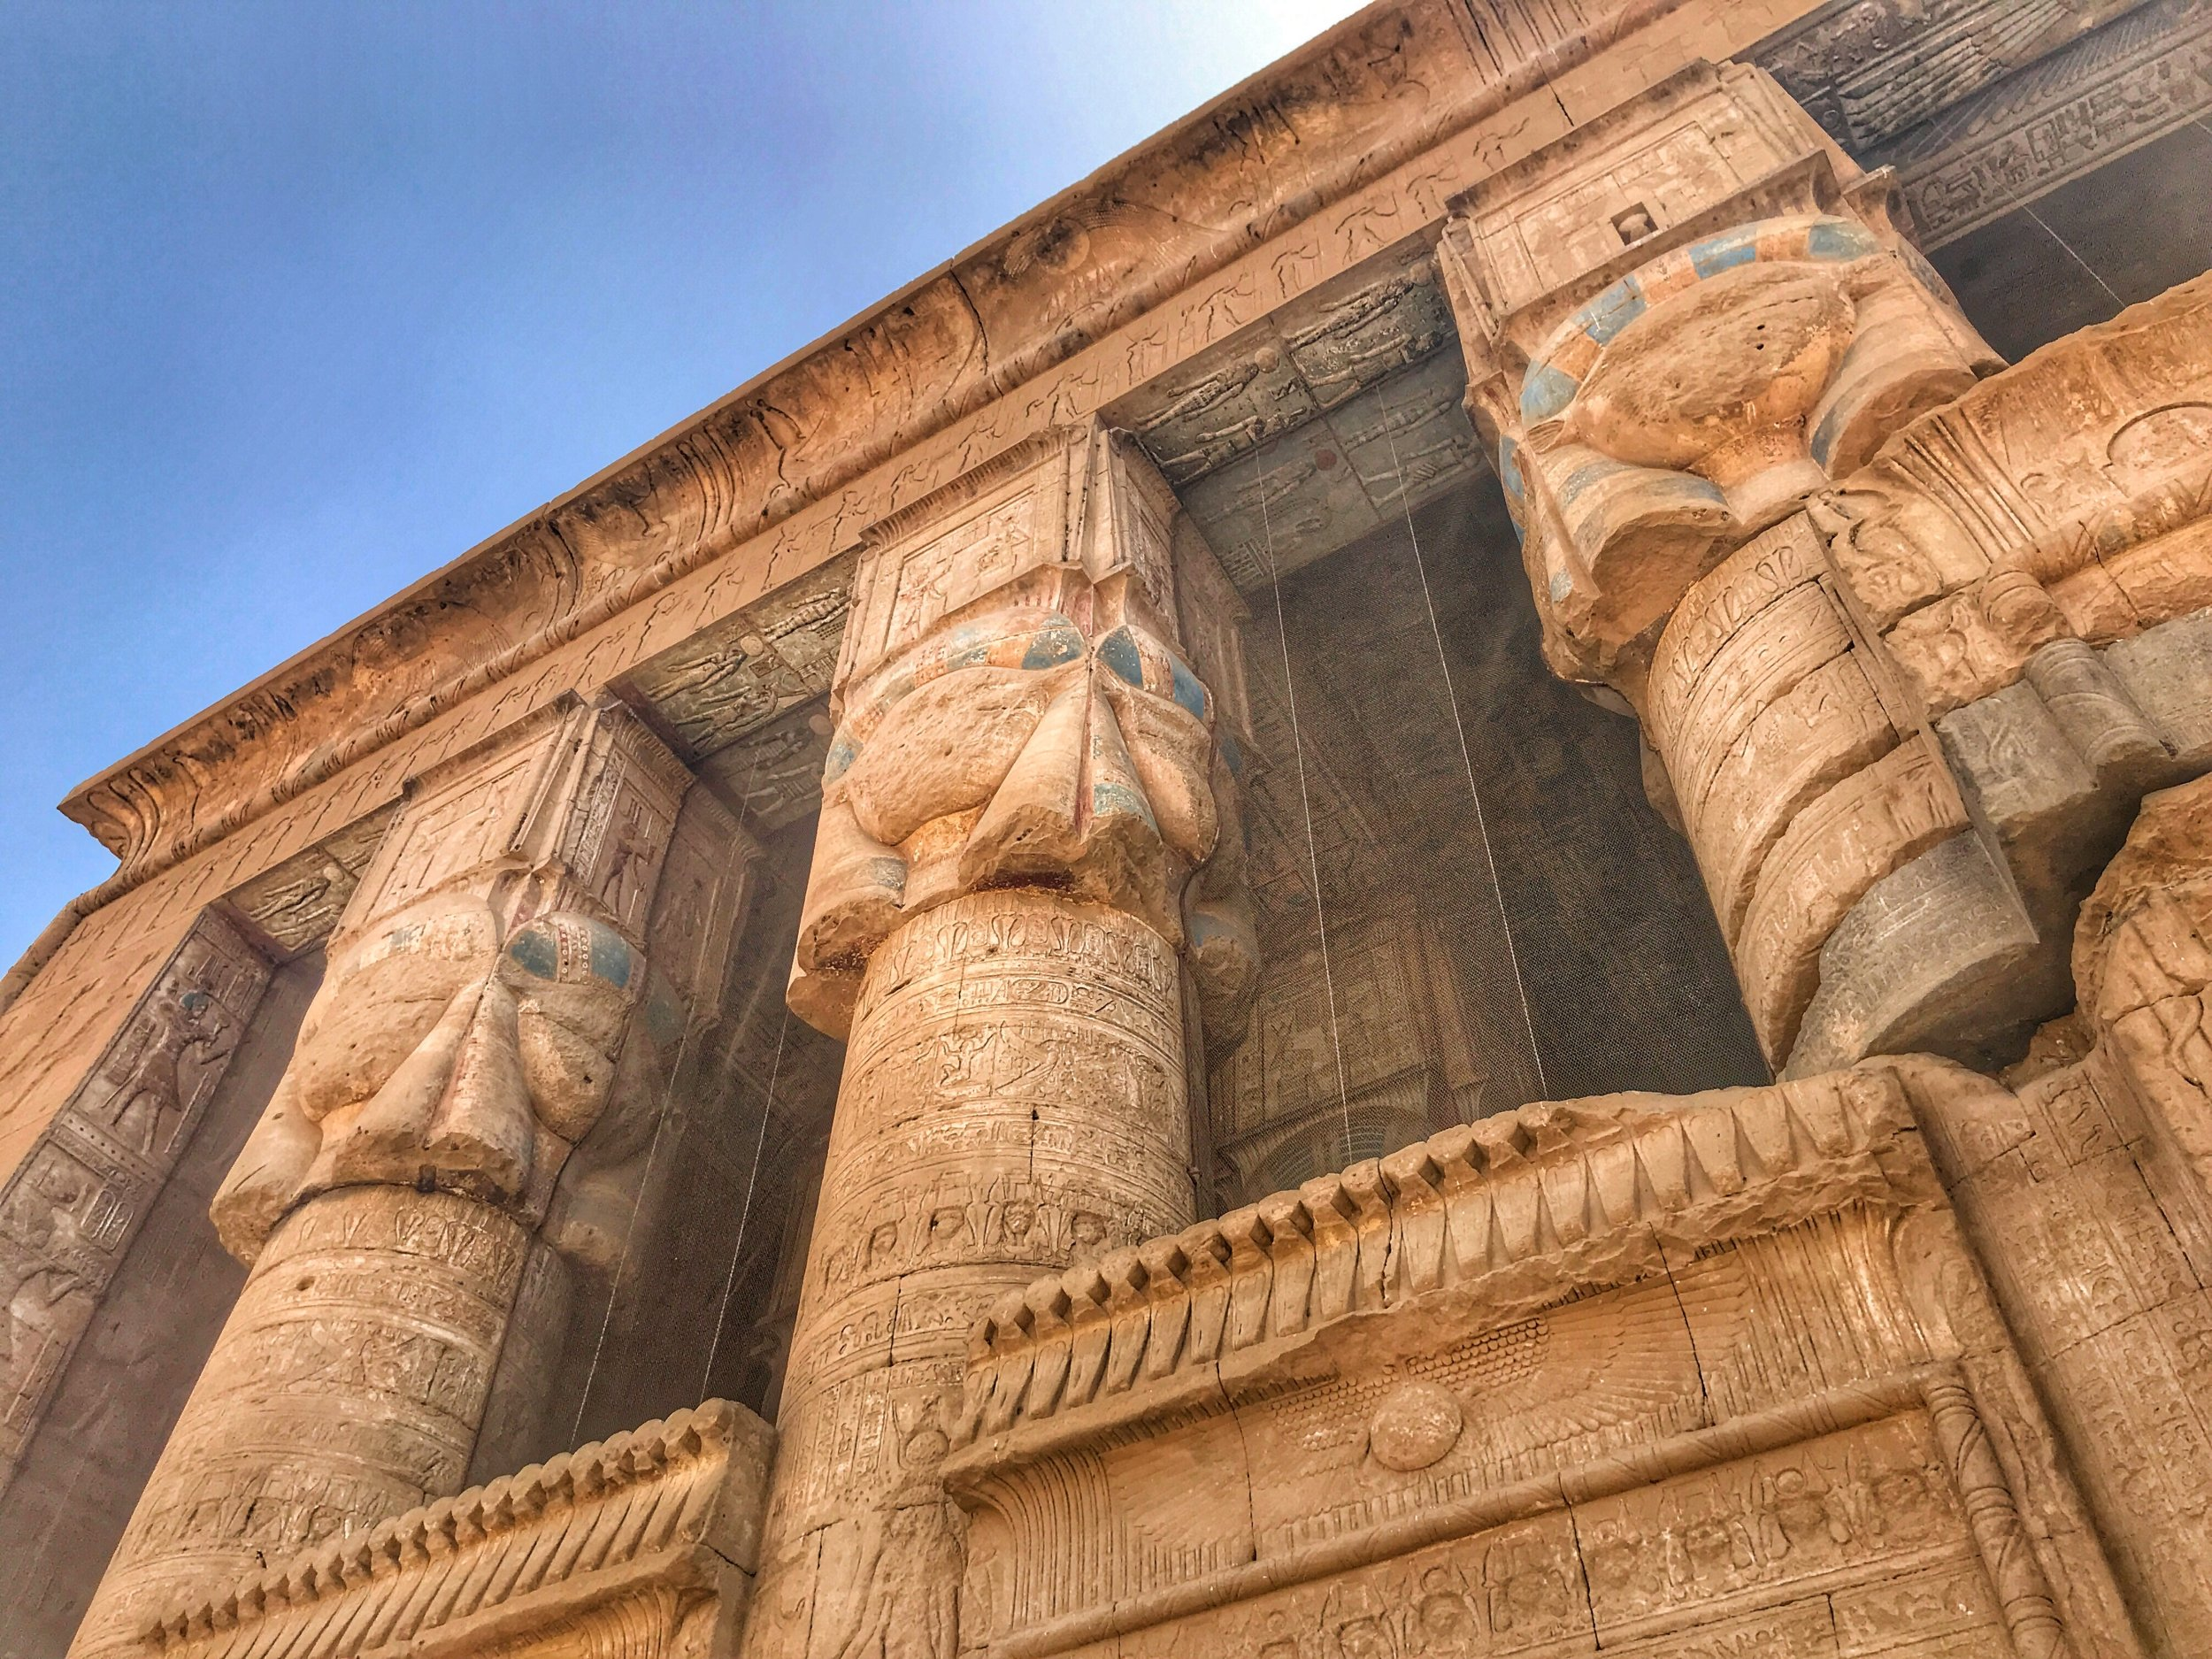 The exterior of the Temple of Hathor glows in the bright sunlight